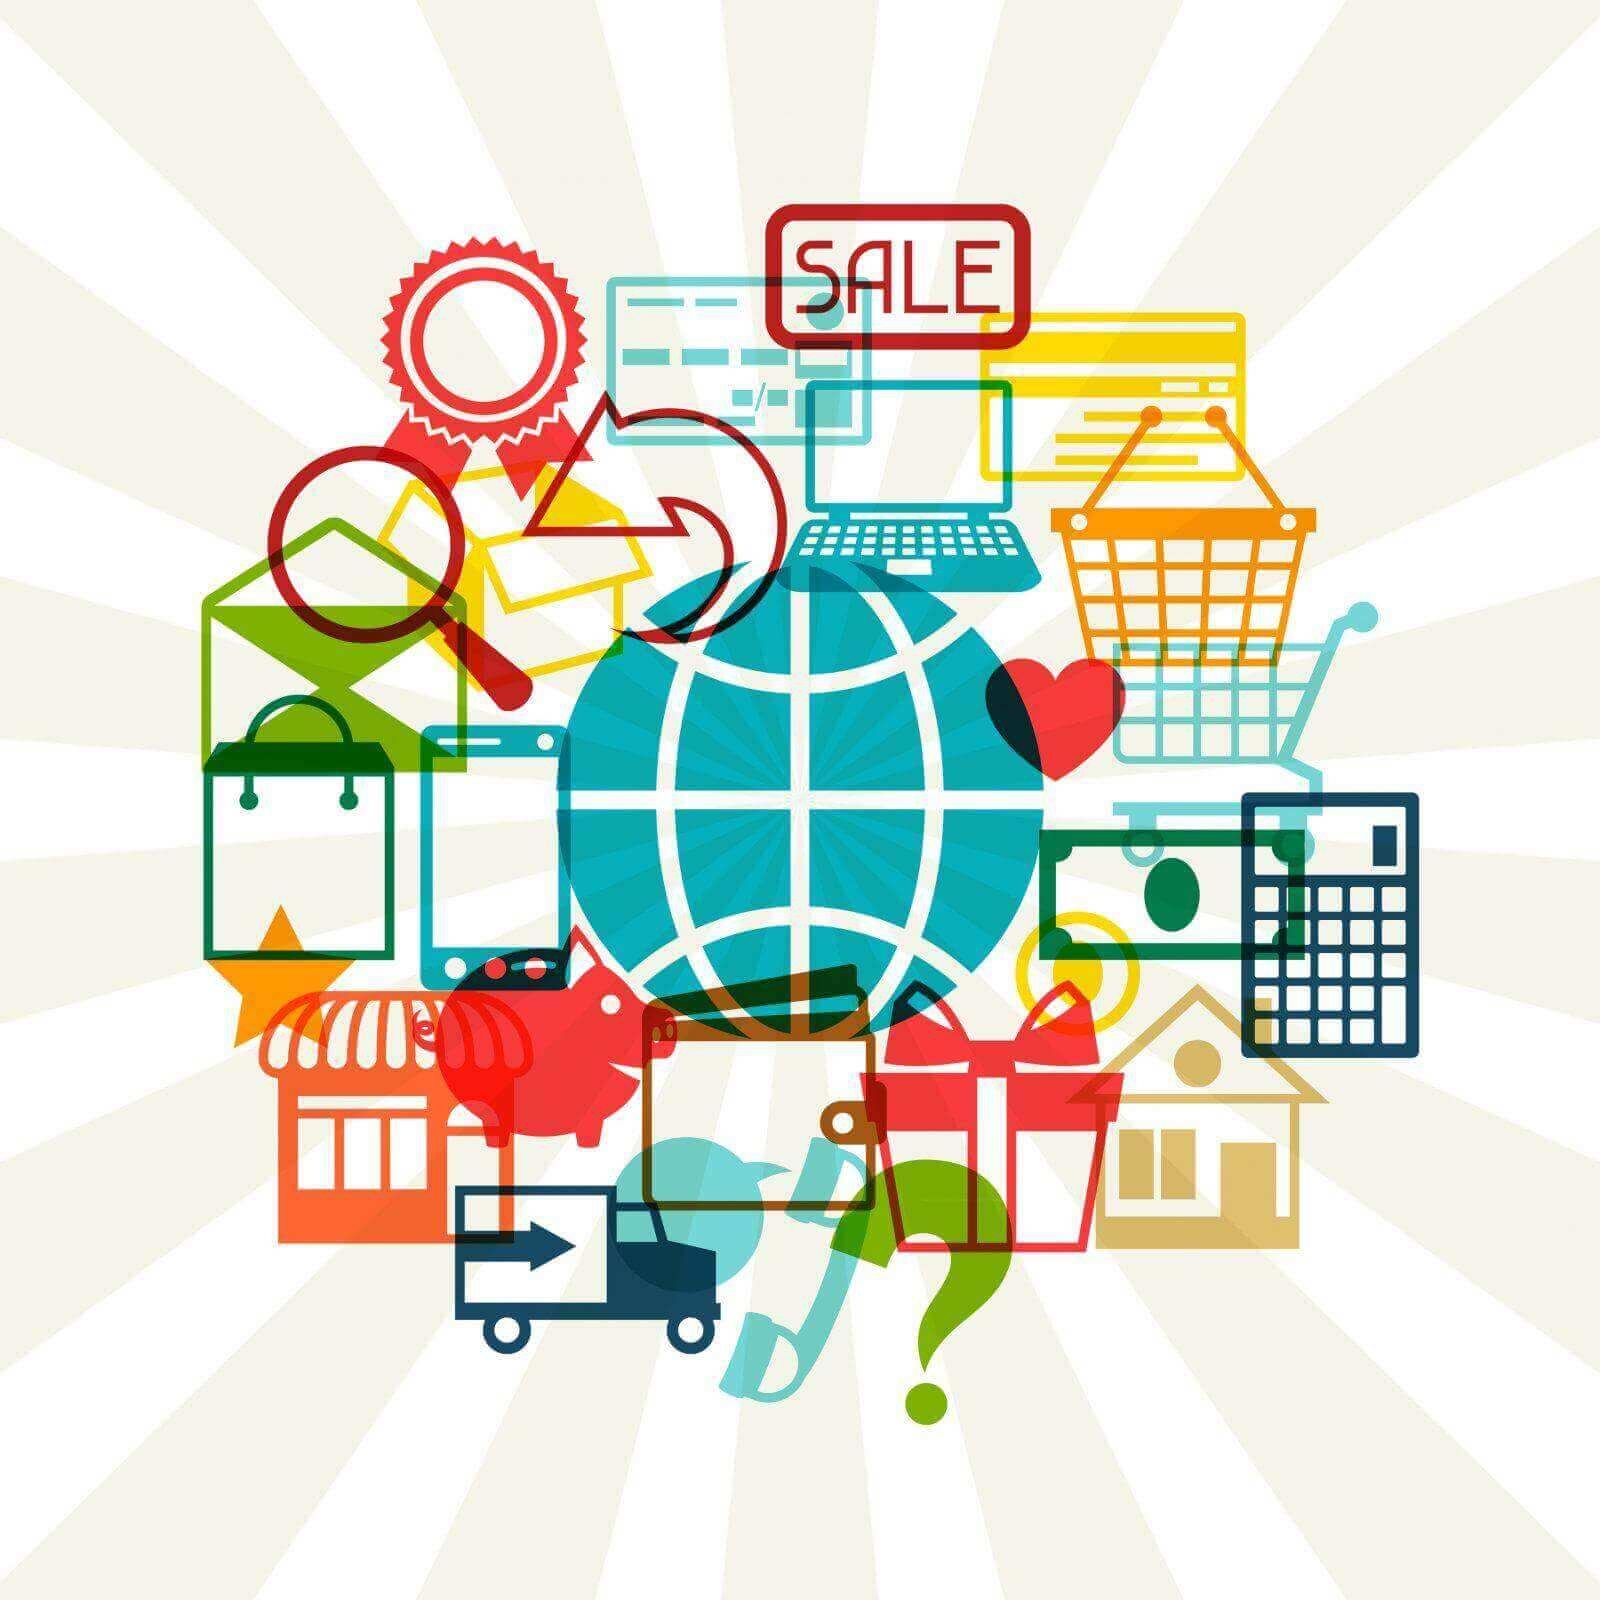 Internet shopping concept background.